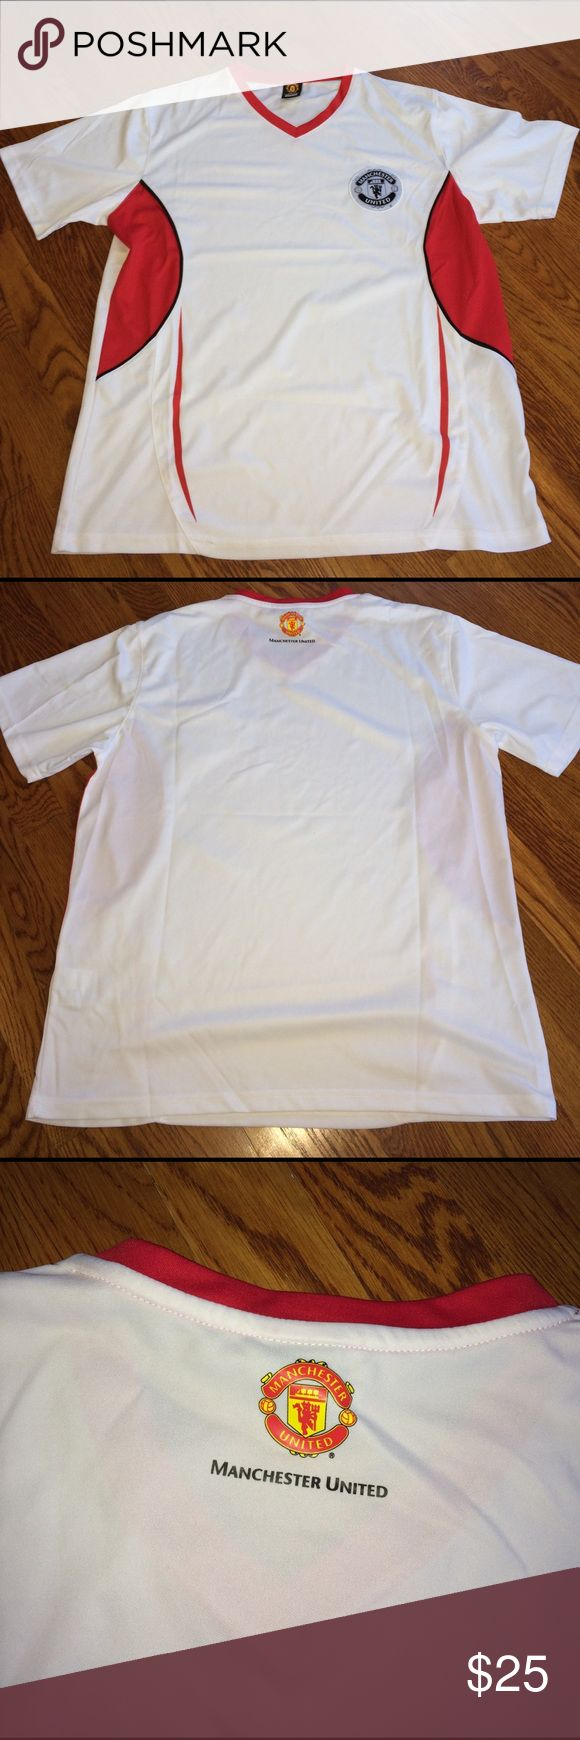 Manchester United Shirt Size M. Manchester United official merchandise soccer shirt. 100% polyester. In great condition!! Rhinox Shirts Tees - Short Sleeve